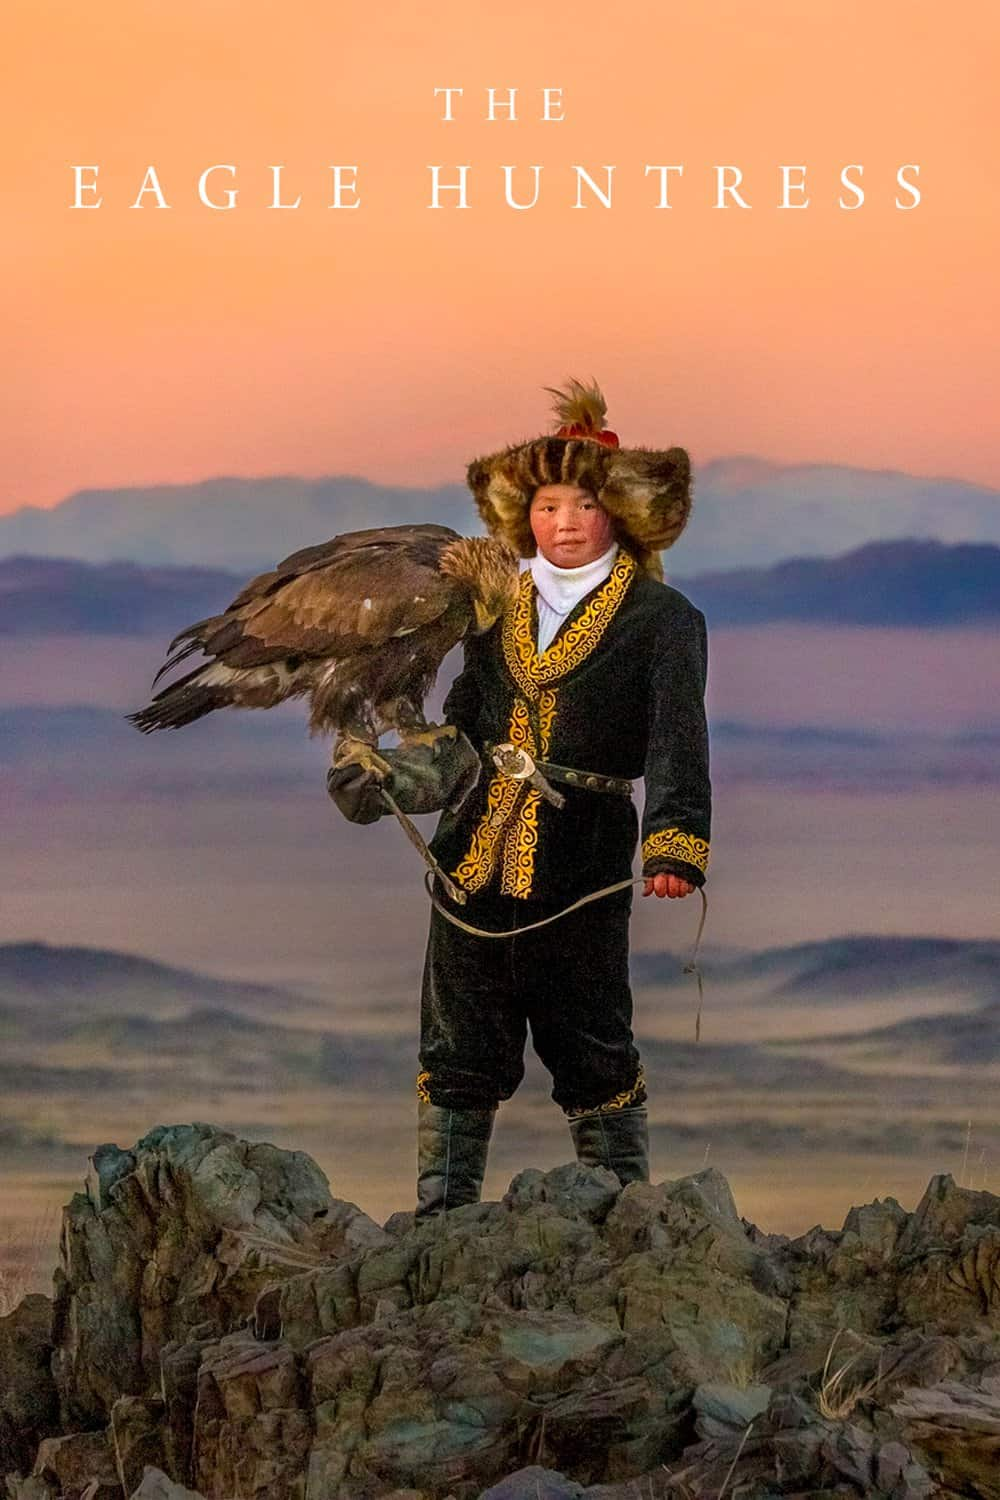 The Eagle Huntress, 2016